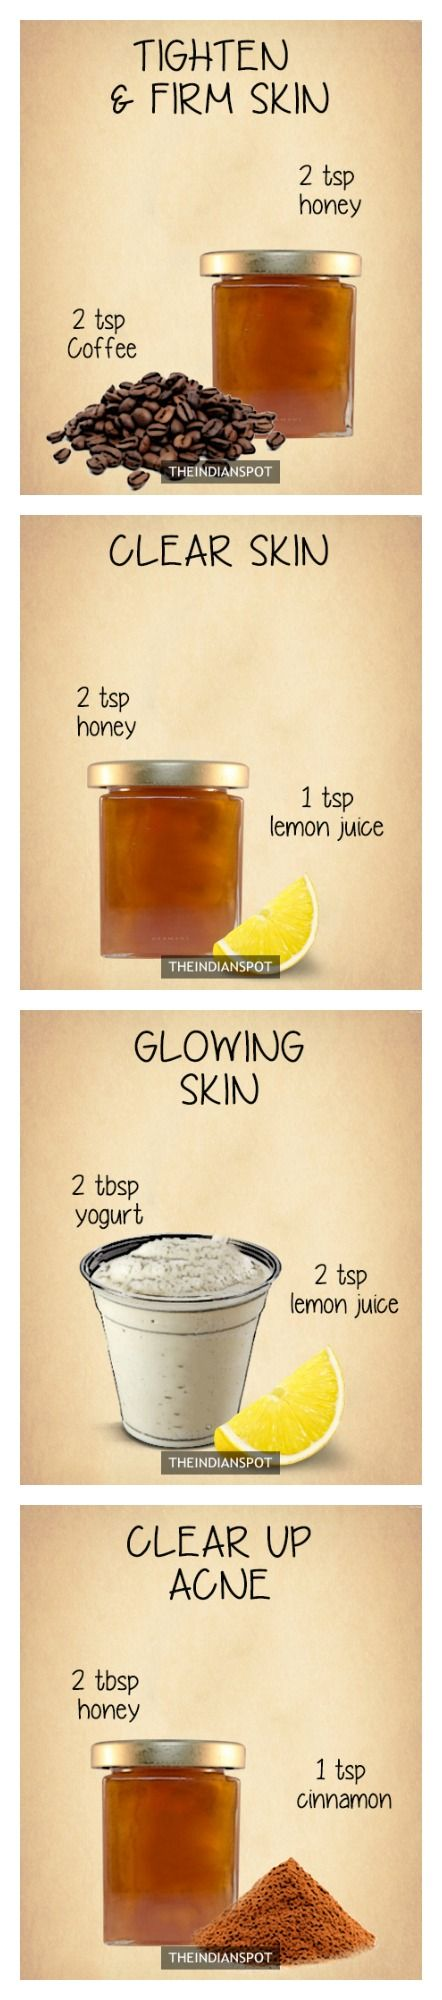 DIY skin mask and scrub using all natural ingredients for all skin types. Honey, lemon, coffee, yogurt etc... For acne, dry skin, glowing skin, tighten skin, or aging skin